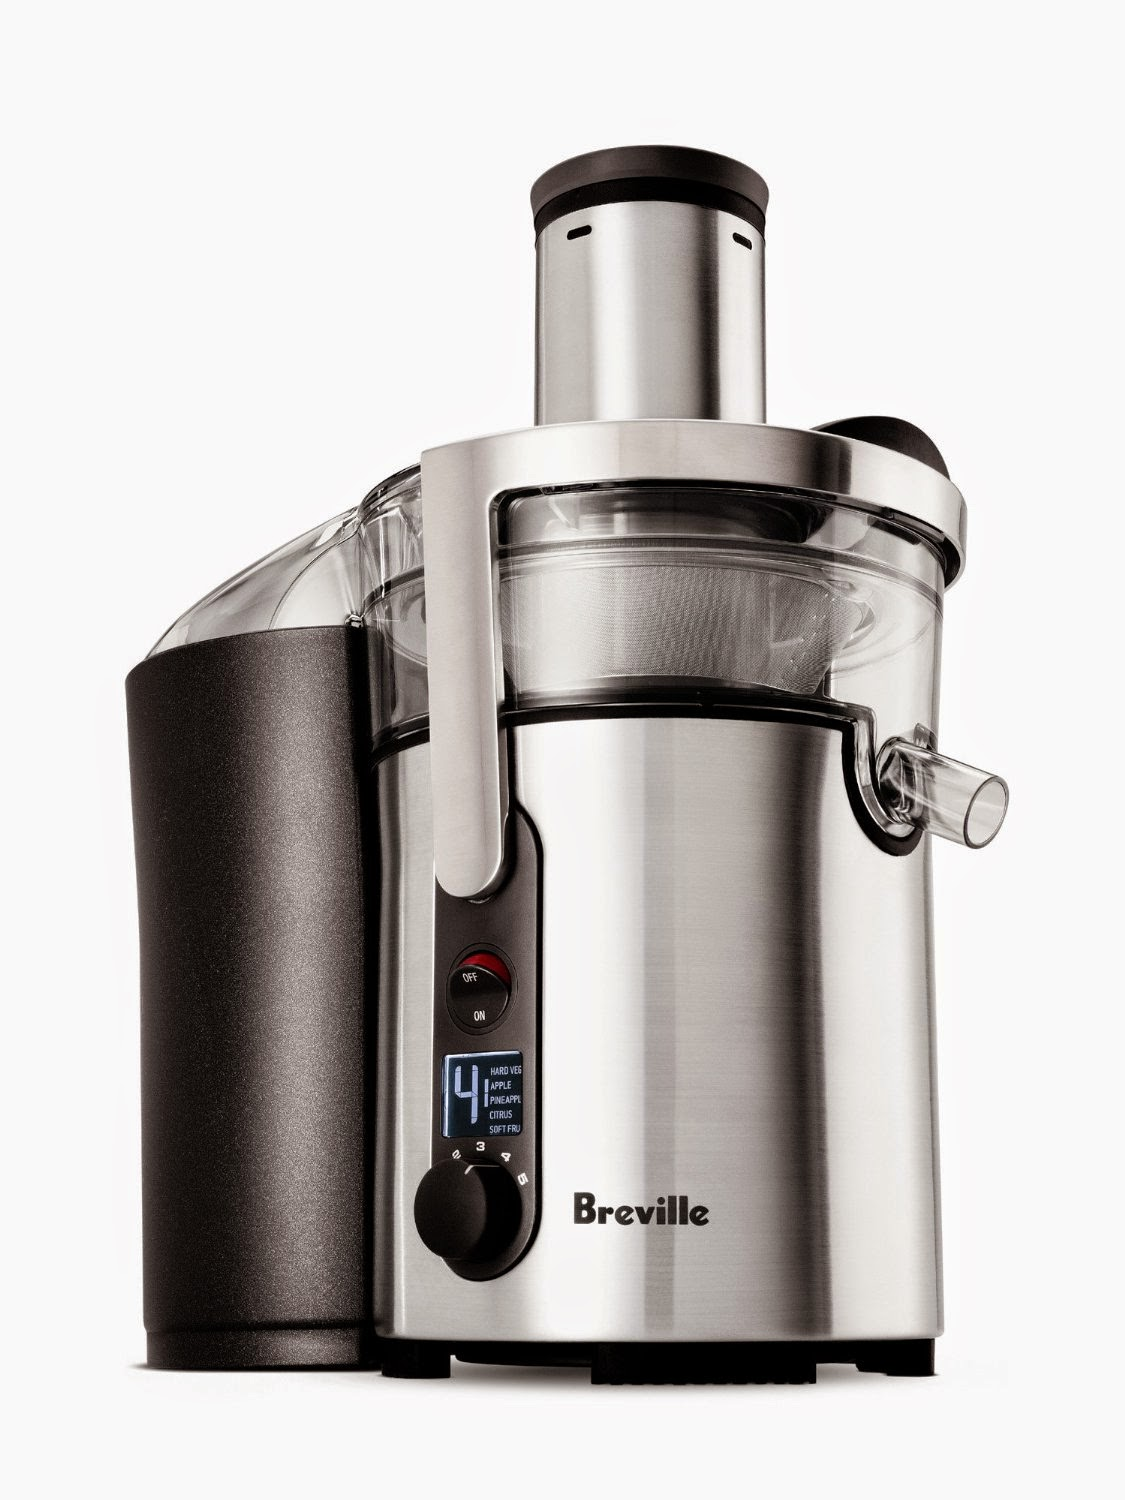 Breville BJE510XL Juice Fountain Multi-Speed 900-Watt Juicer, picture, image, review features and specifications